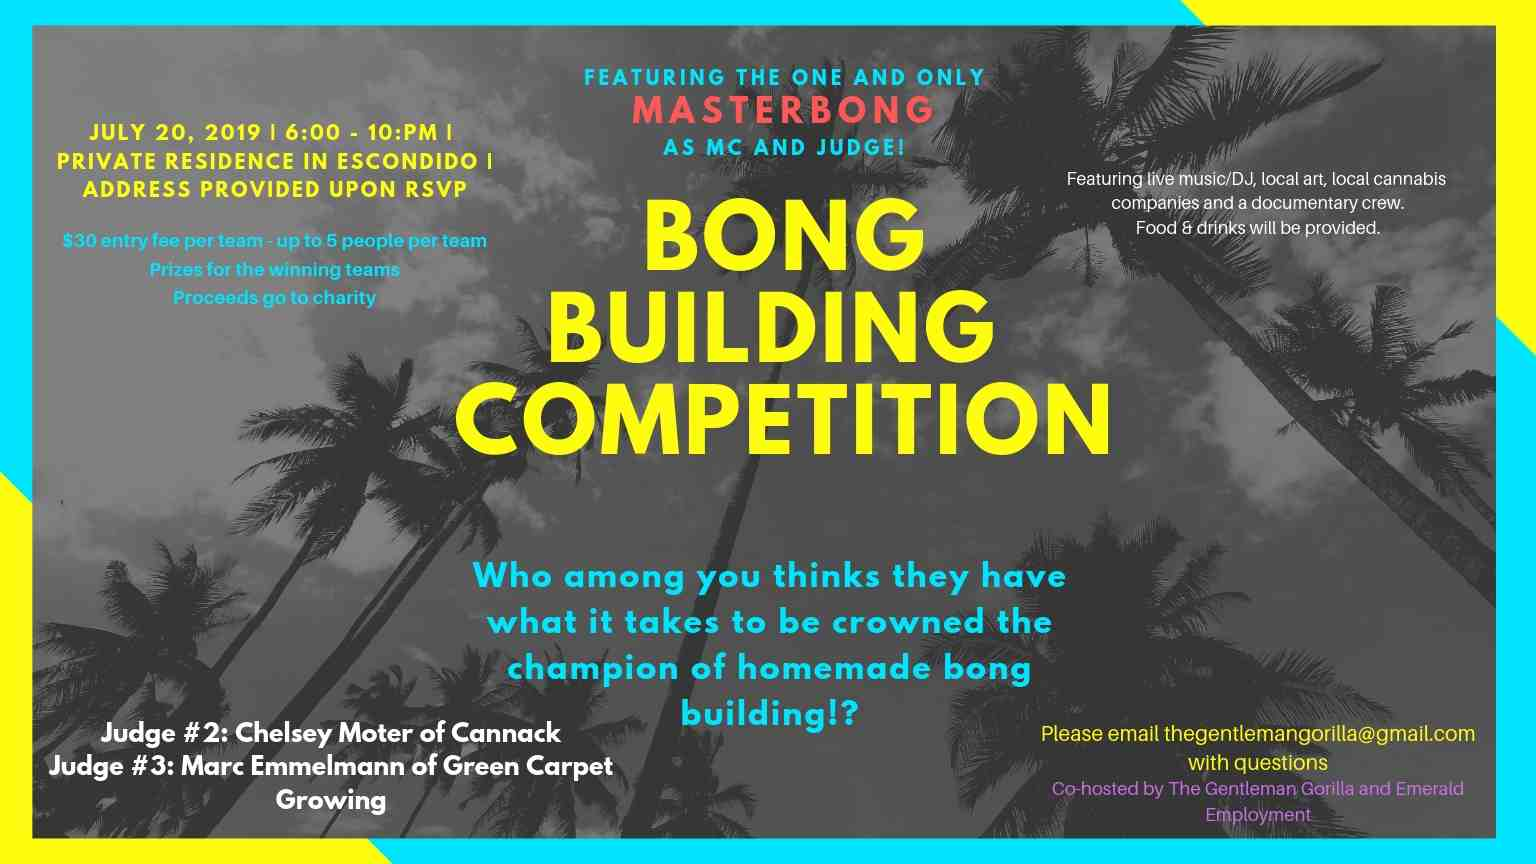 Bong Building Competition